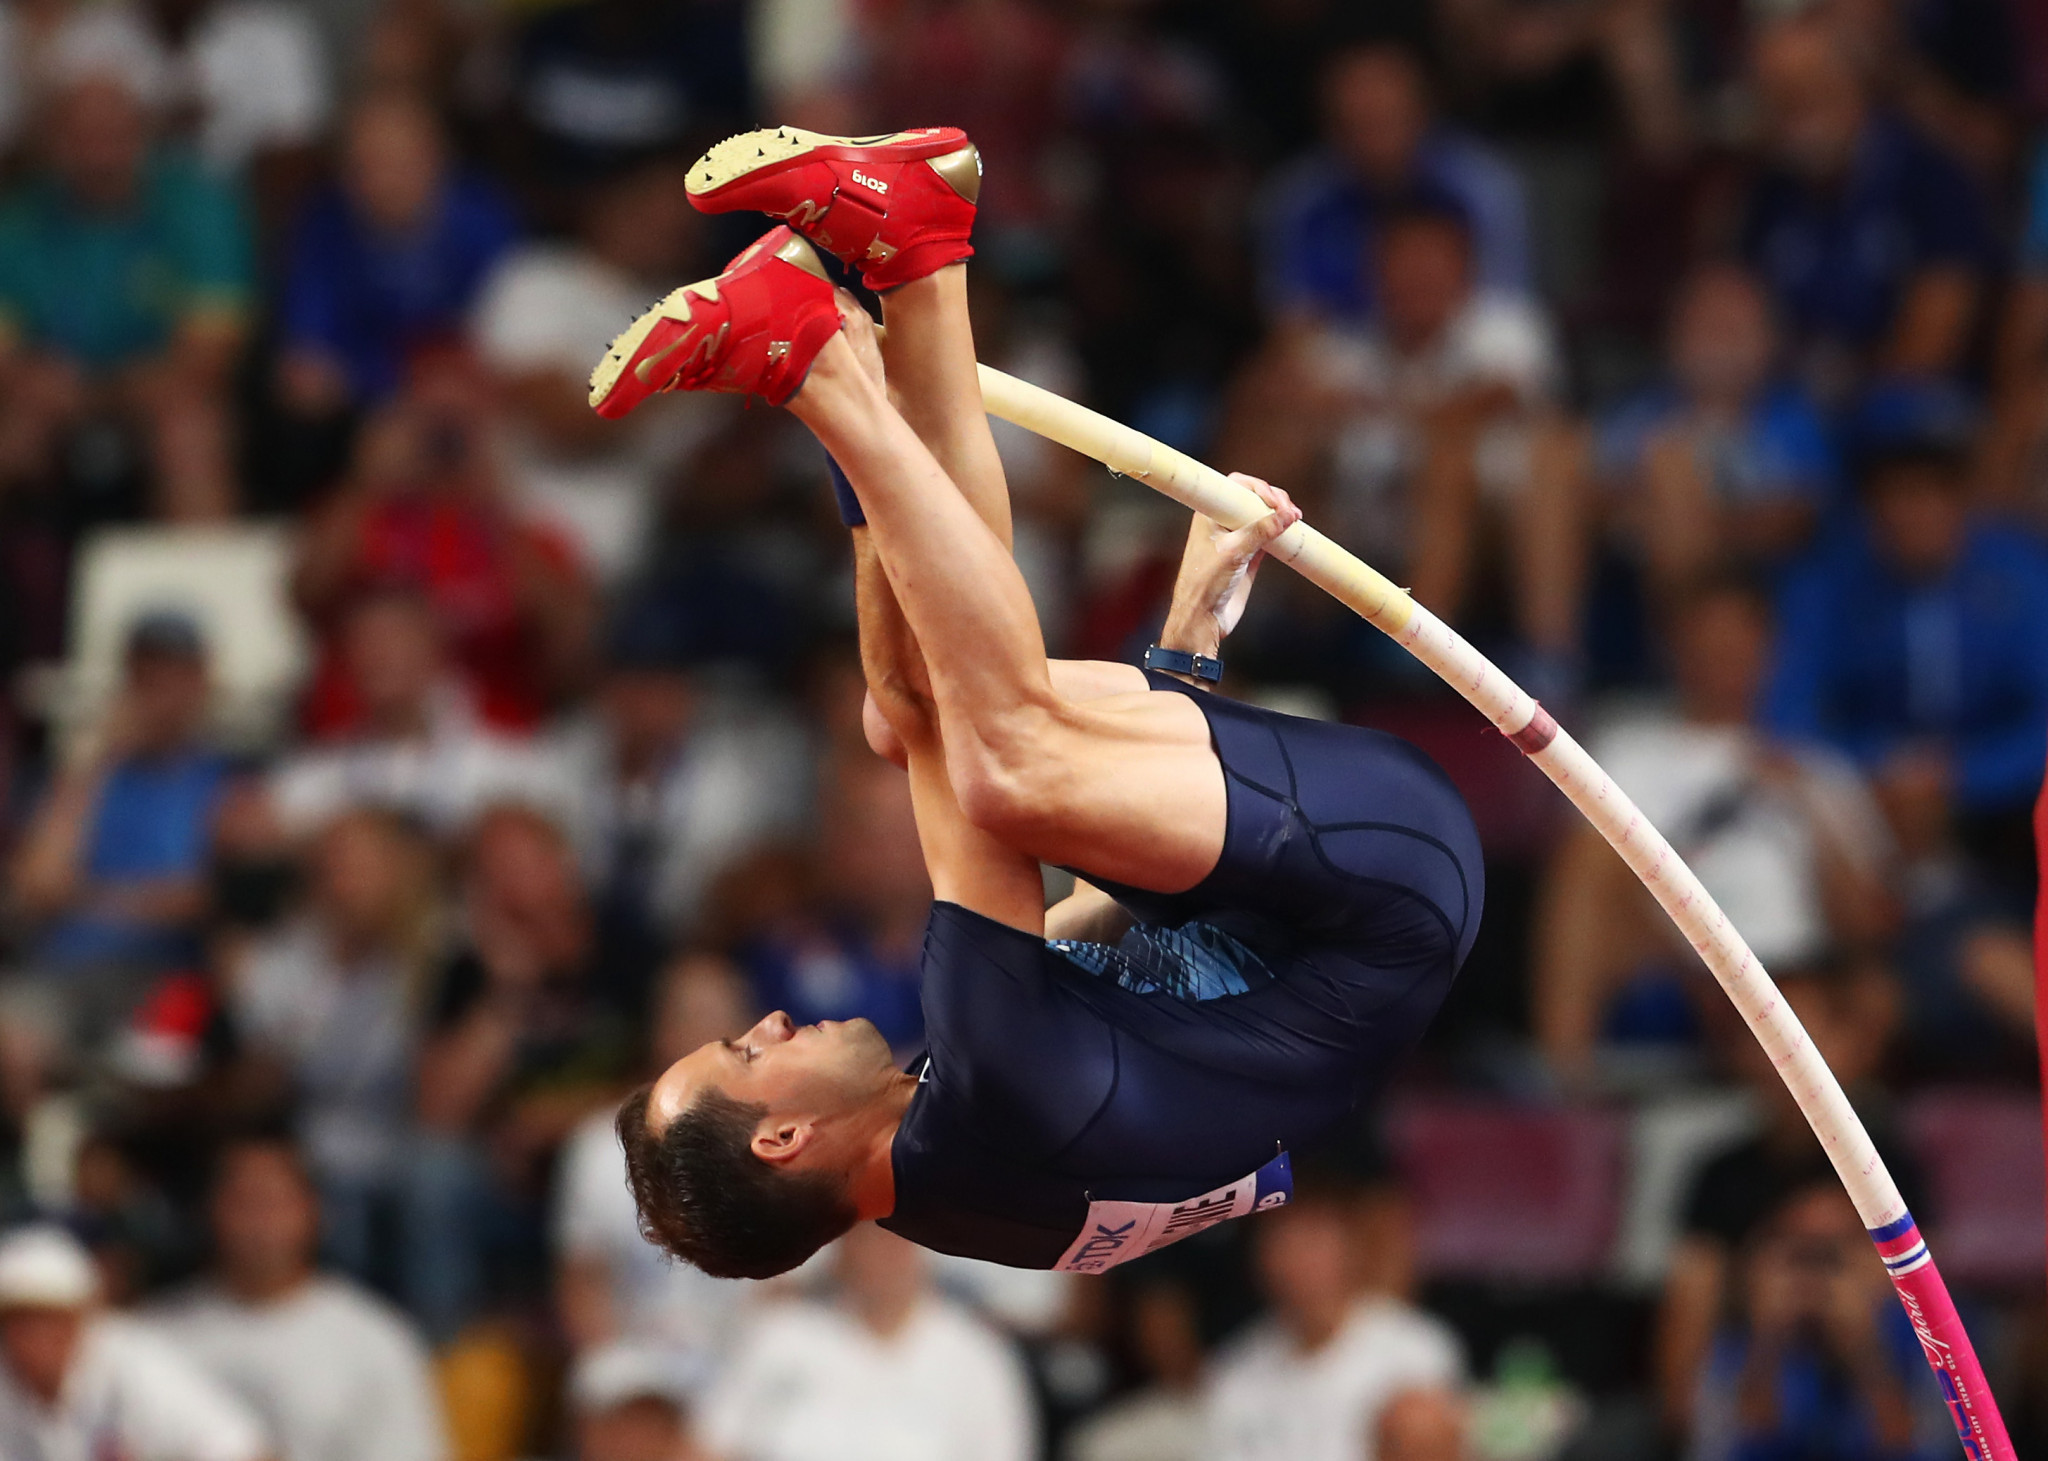 Duplantis and Lavillenie play it again at World Athletics Indoor Tour Gold meeting in Liévin